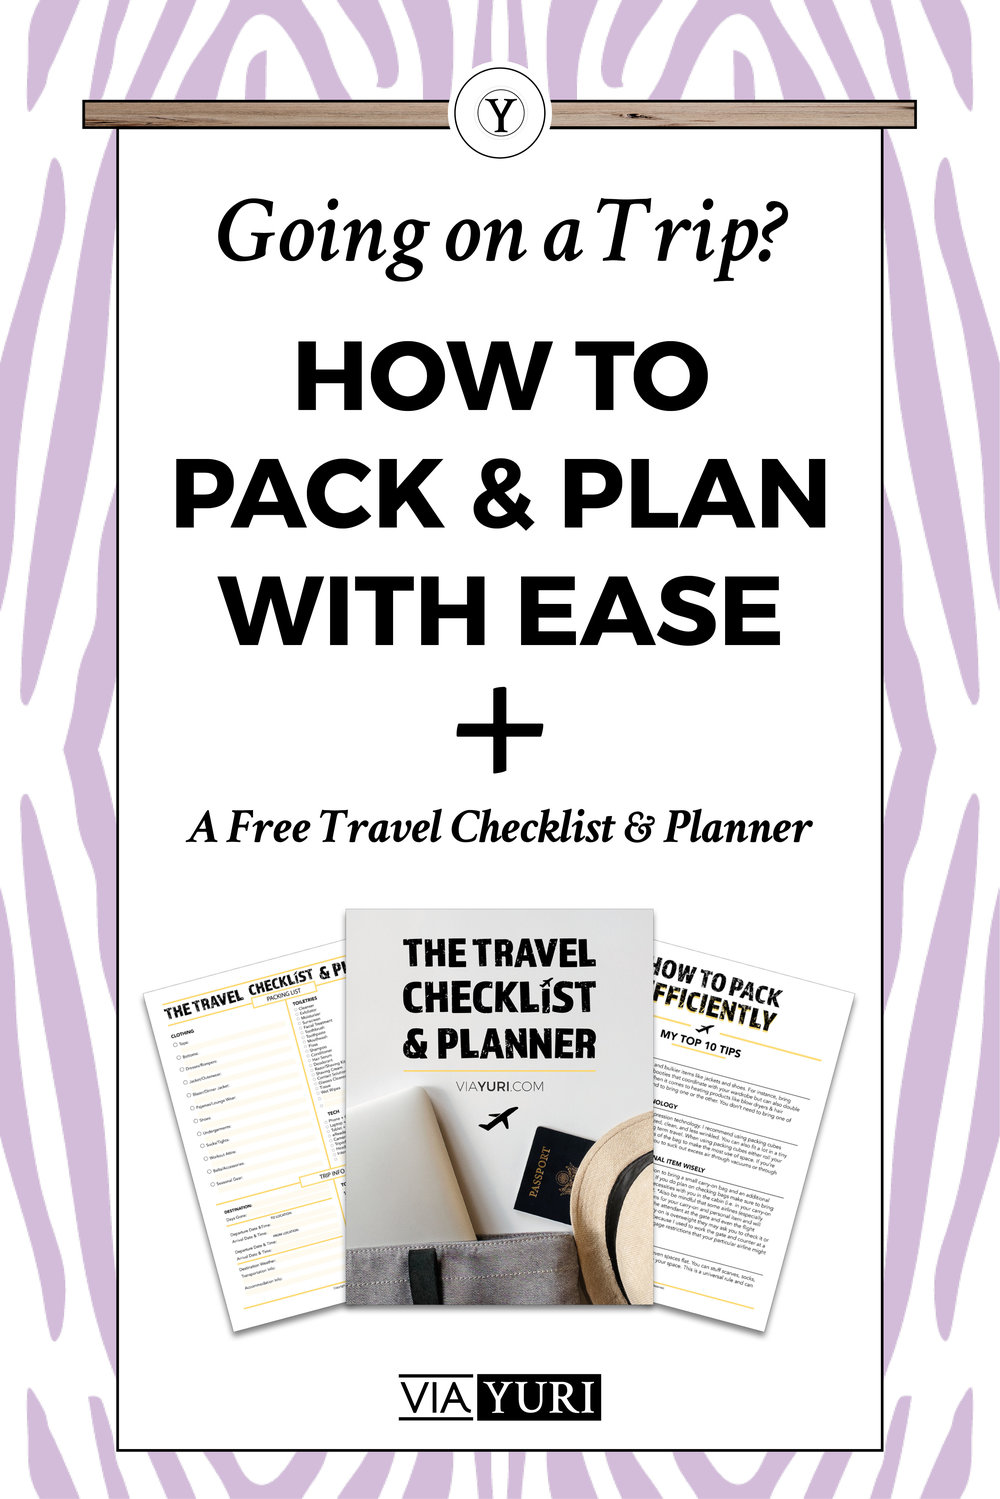 Learn How To Plan & Pack with Ease for any vacation, weekend getaway, or special trip + Get t he FREE TRAVEL CHECKLIST & PLANNER & get out the brief video!